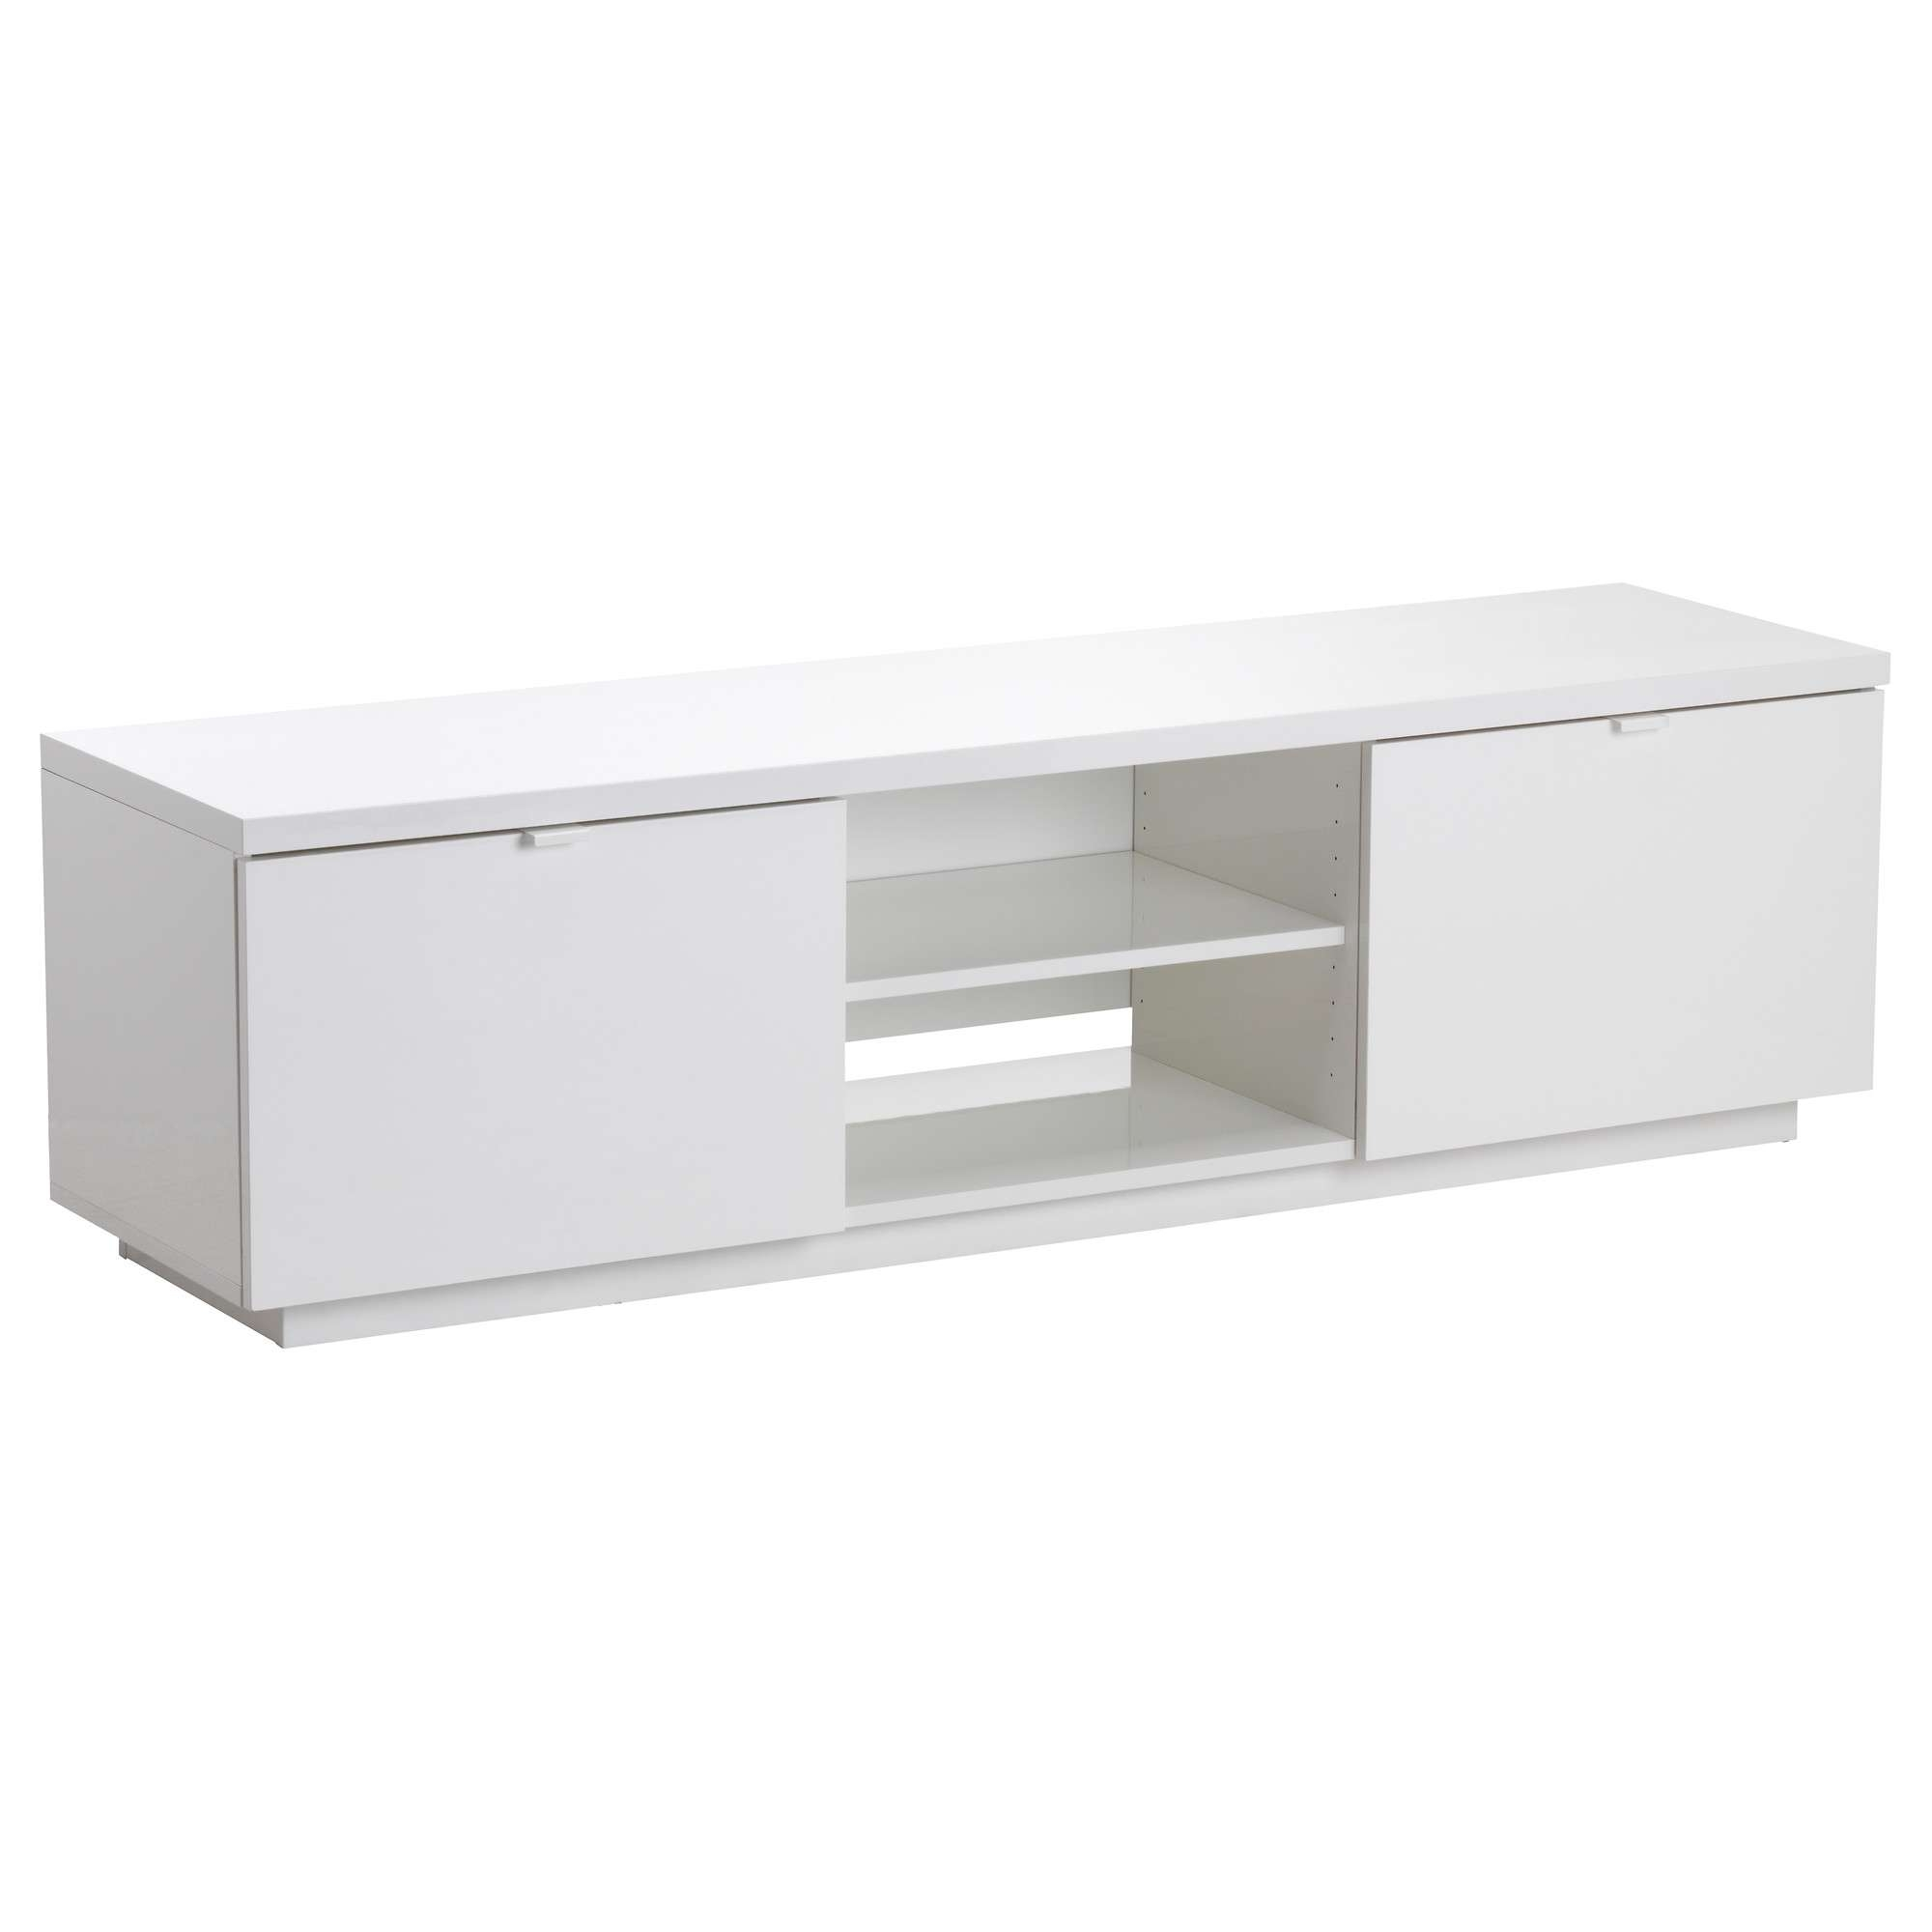 Byås Tv Unit – Ikea Inside White High Gloss Tv Stands (View 8 of 15)